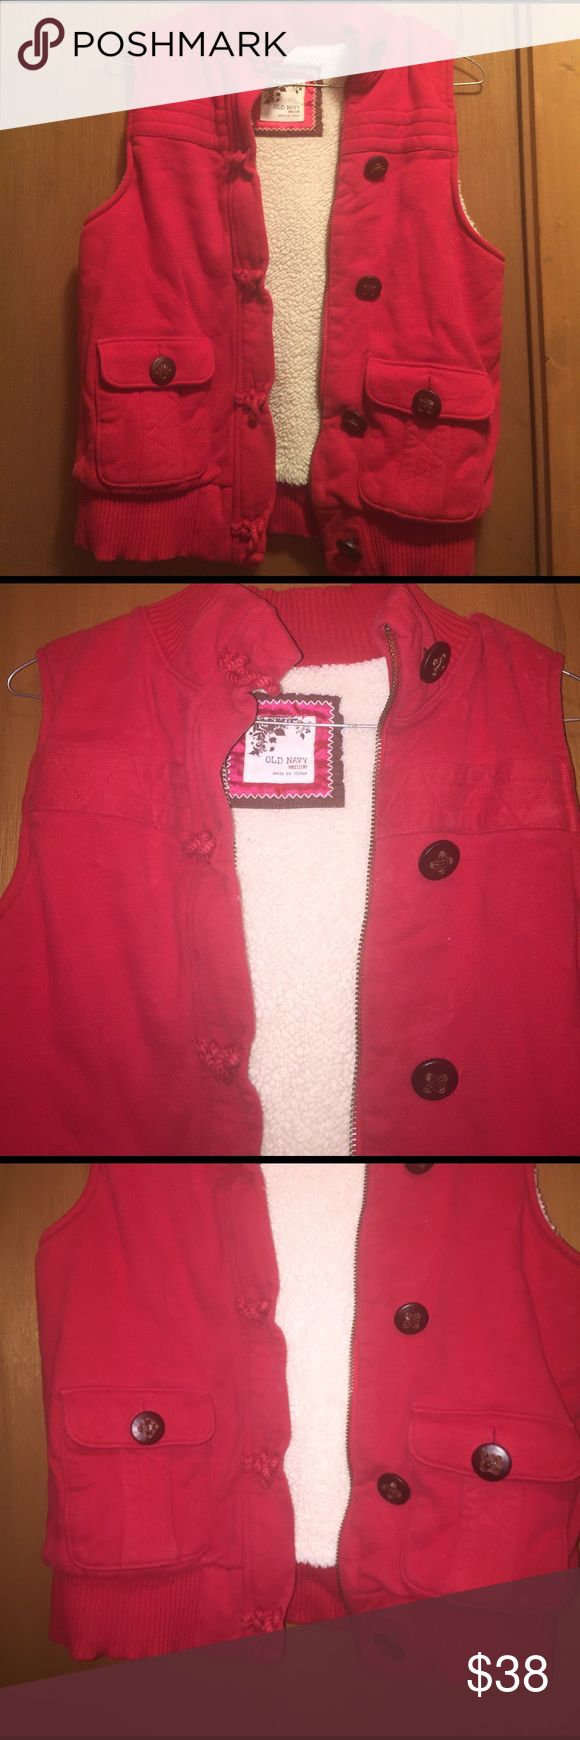 Old Navy Vest Old Navy best. Red with brown buttons. Gently worn, but still looks new. Jackets & Coats Vests